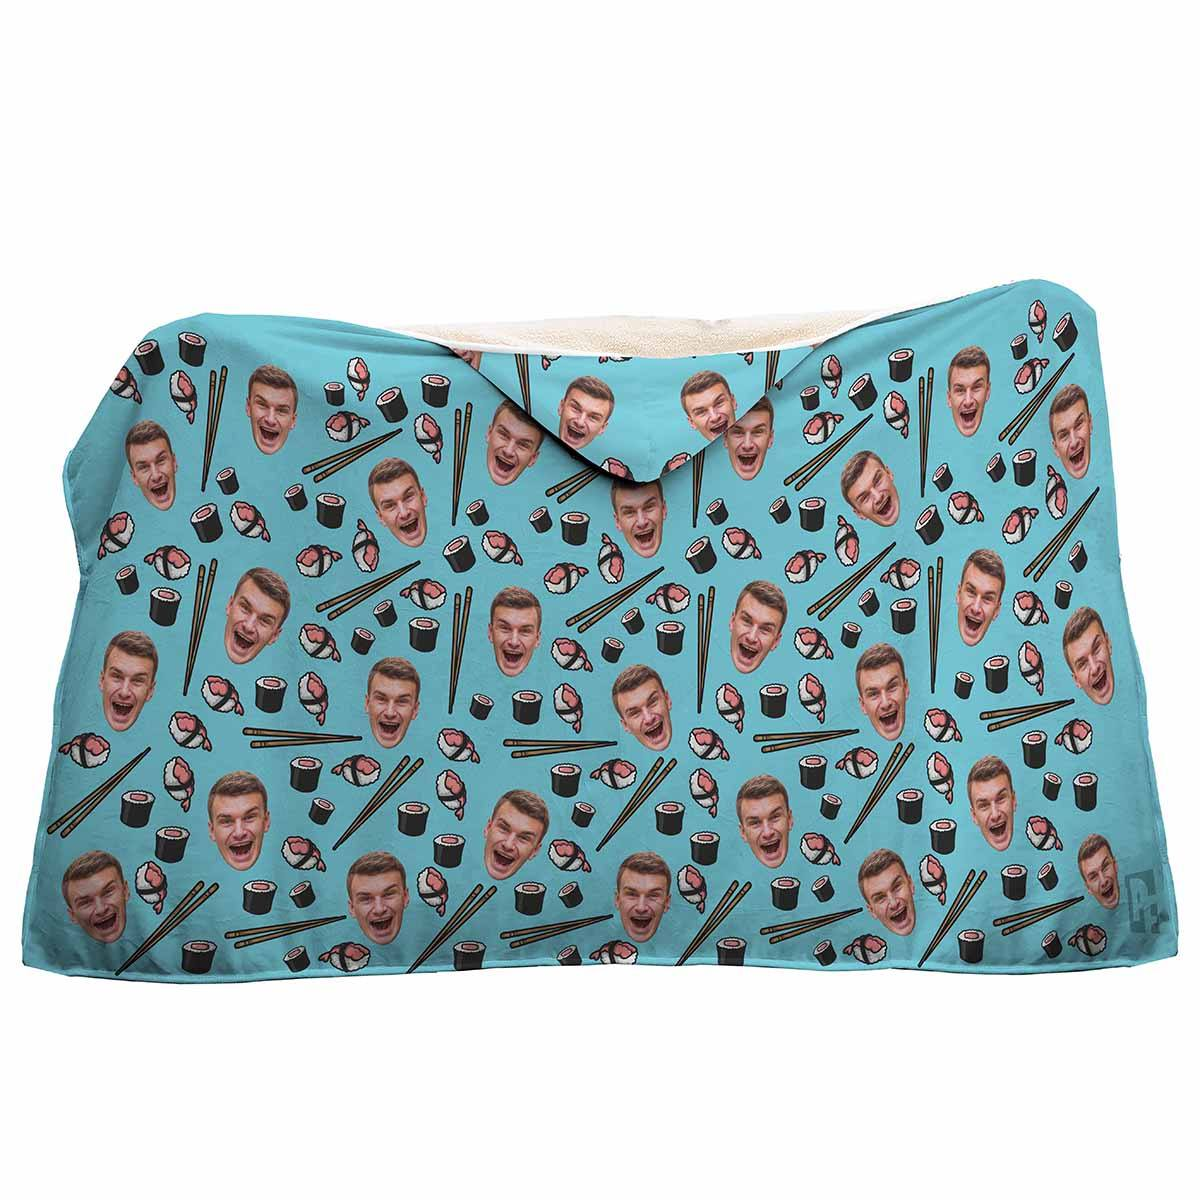 blue Sushi hooded blanket personalized with photo of face printed on it